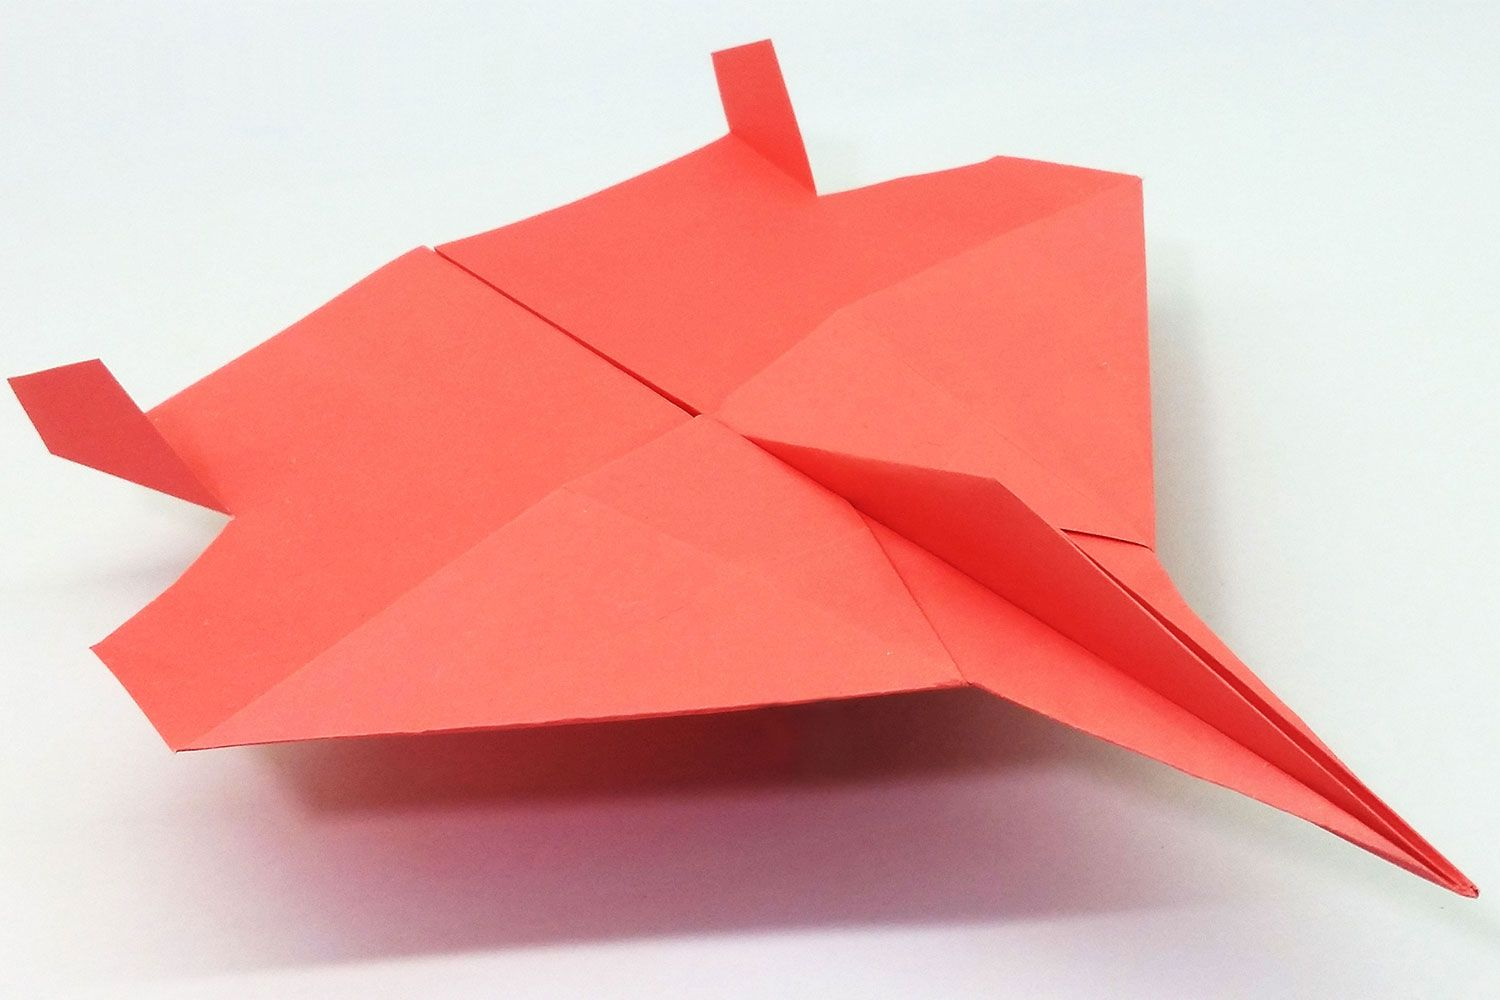 Airplane Making With Color Paper In 2020 Make A Paper Airplane Paper Plane Paper Airplanes